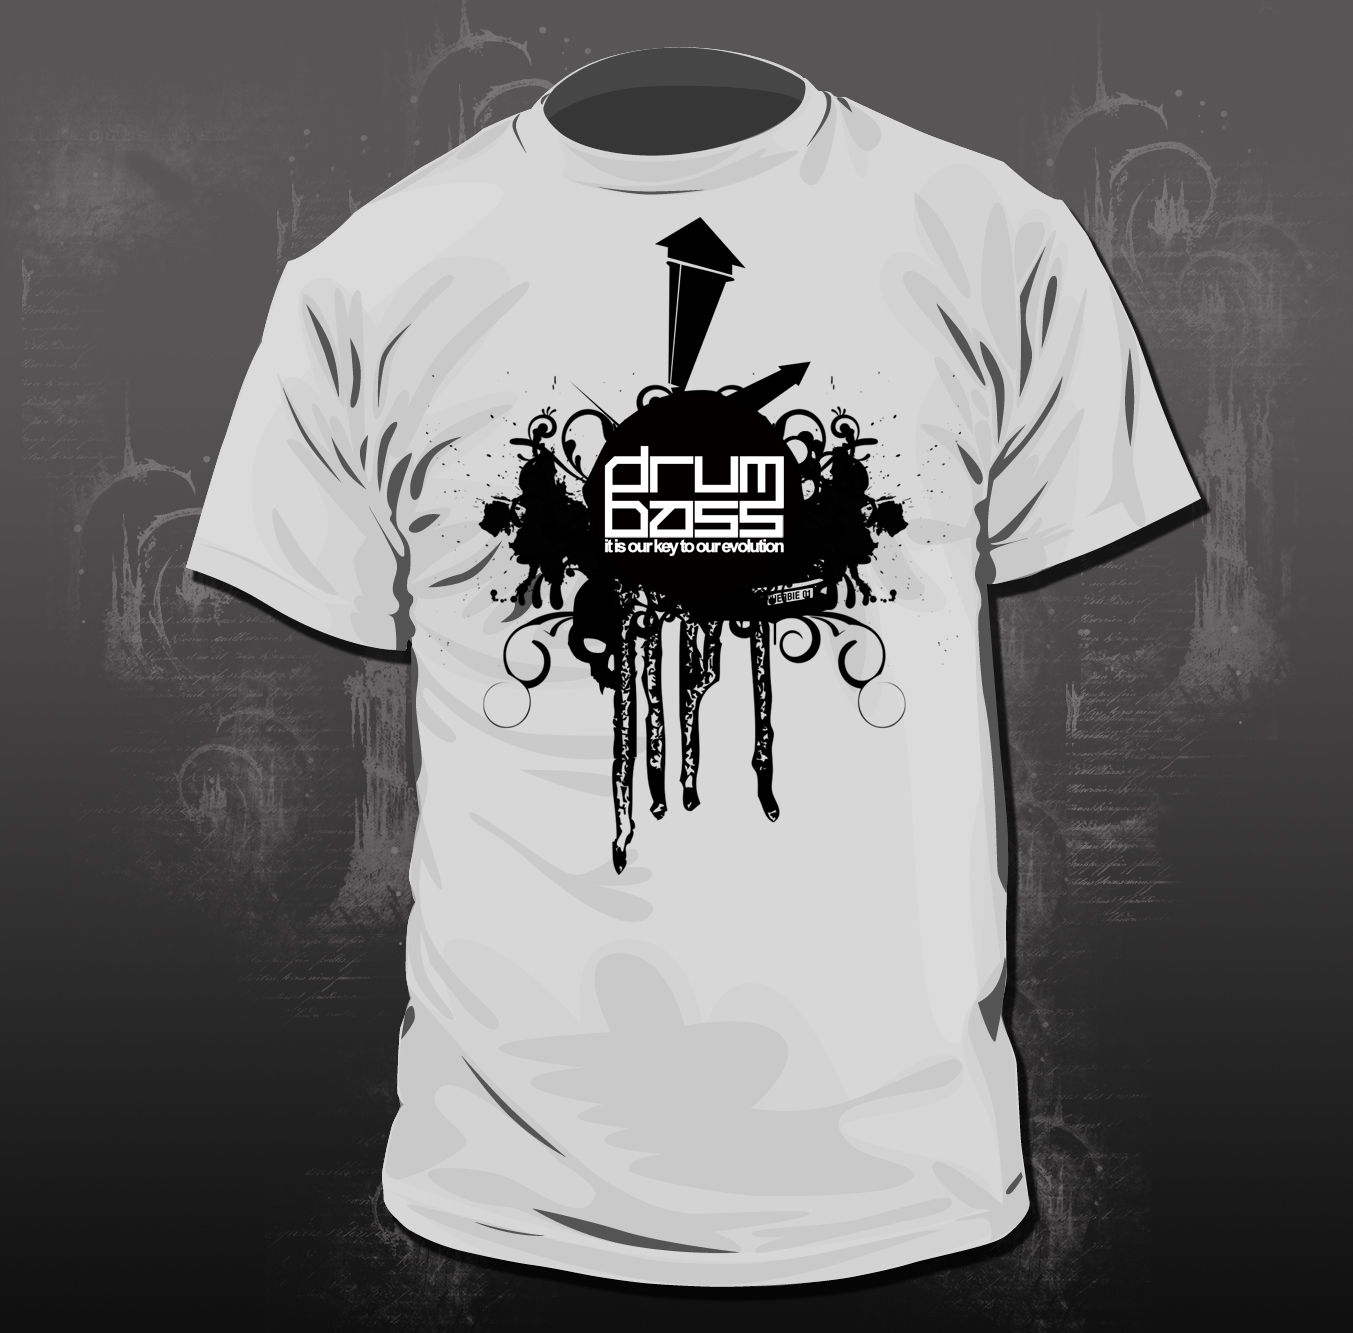 http://4.bp.blogspot.com/_7XZA6jK0x00/TBjzZ2x2VoI/AAAAAAAAABY/W83UNo8H_6s/s1600/T_shirt_design_Drum_and_bass_by_xBroodrooster2x.jpg